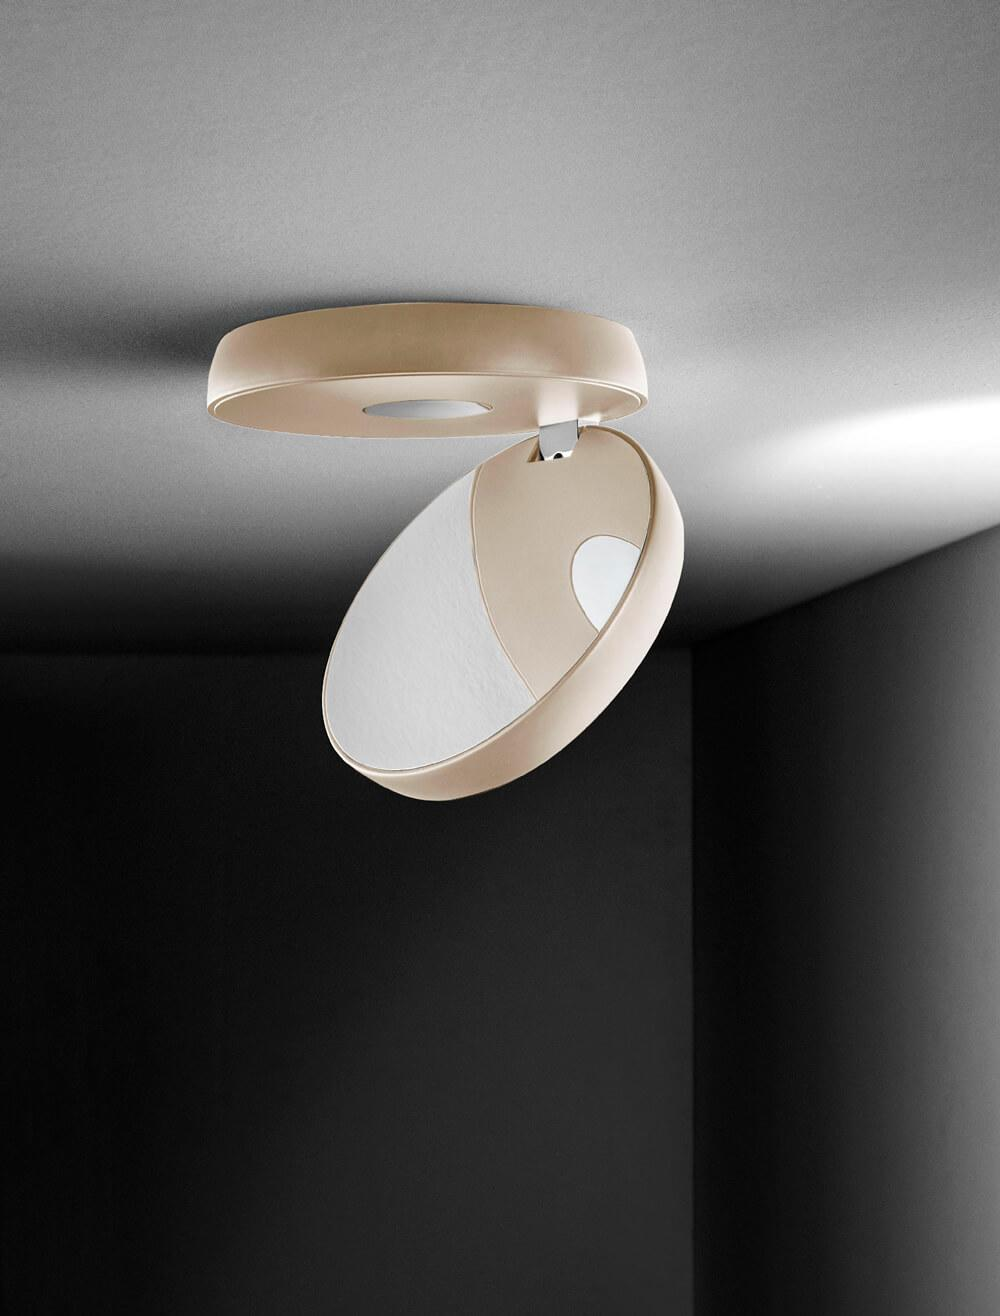 Lodes Nautilus Ceiling Lights